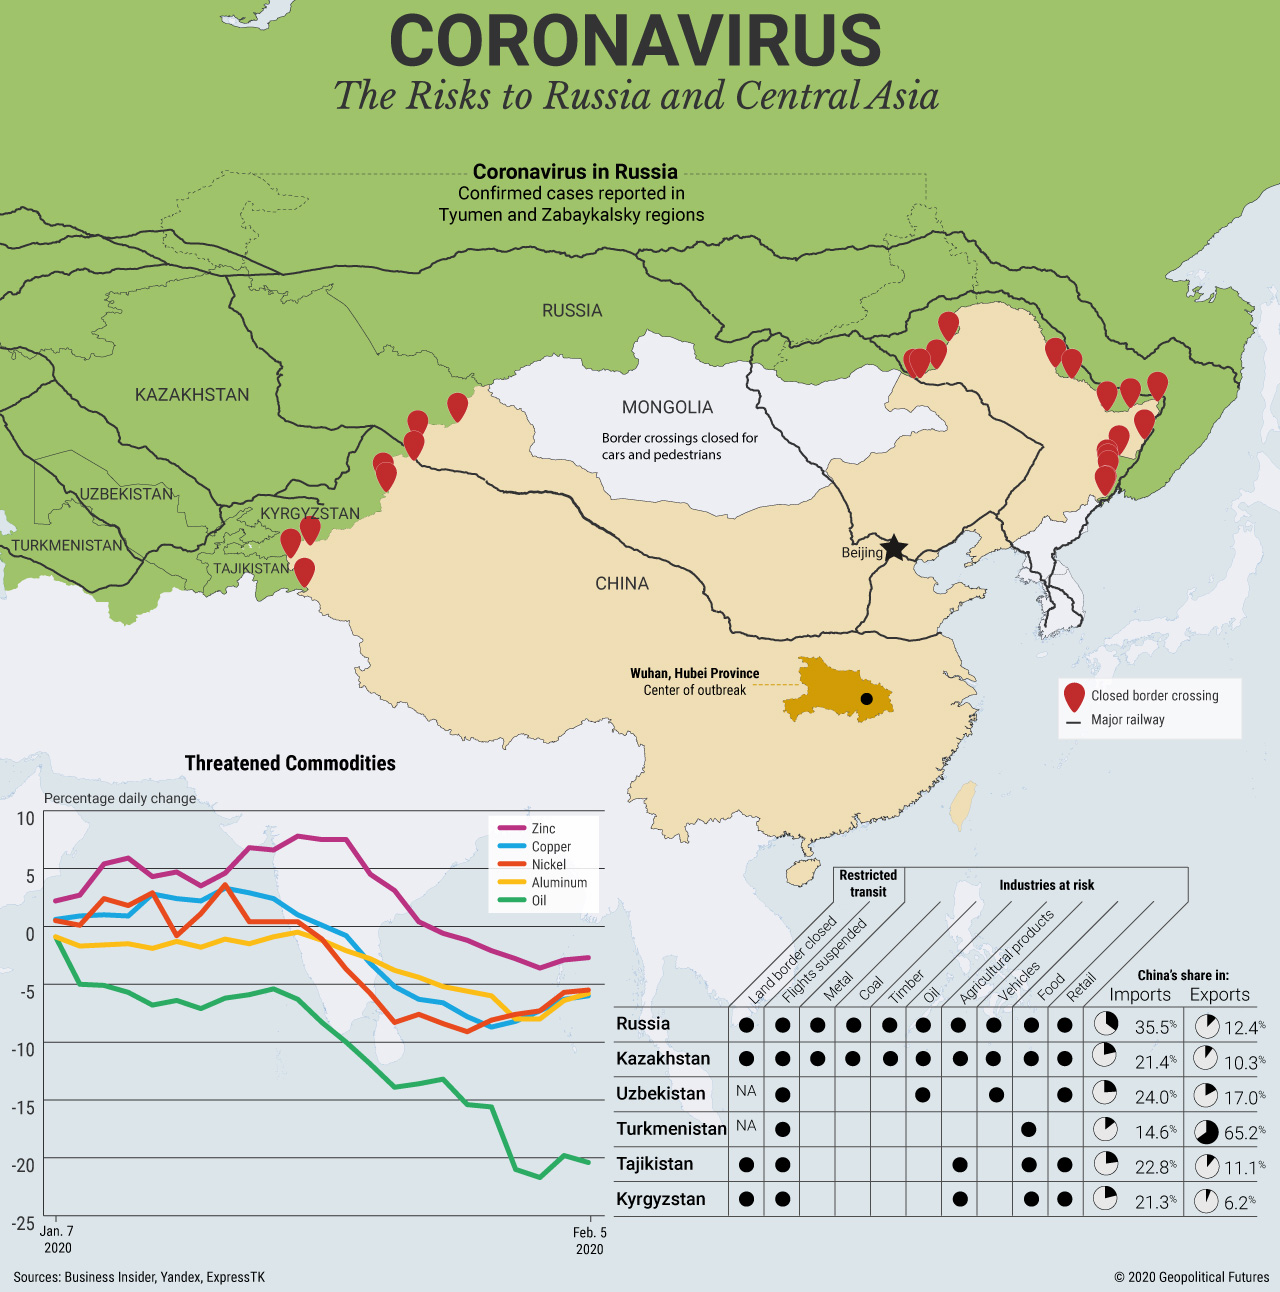 Coronavirus: The Risks to Russia and Central Asia